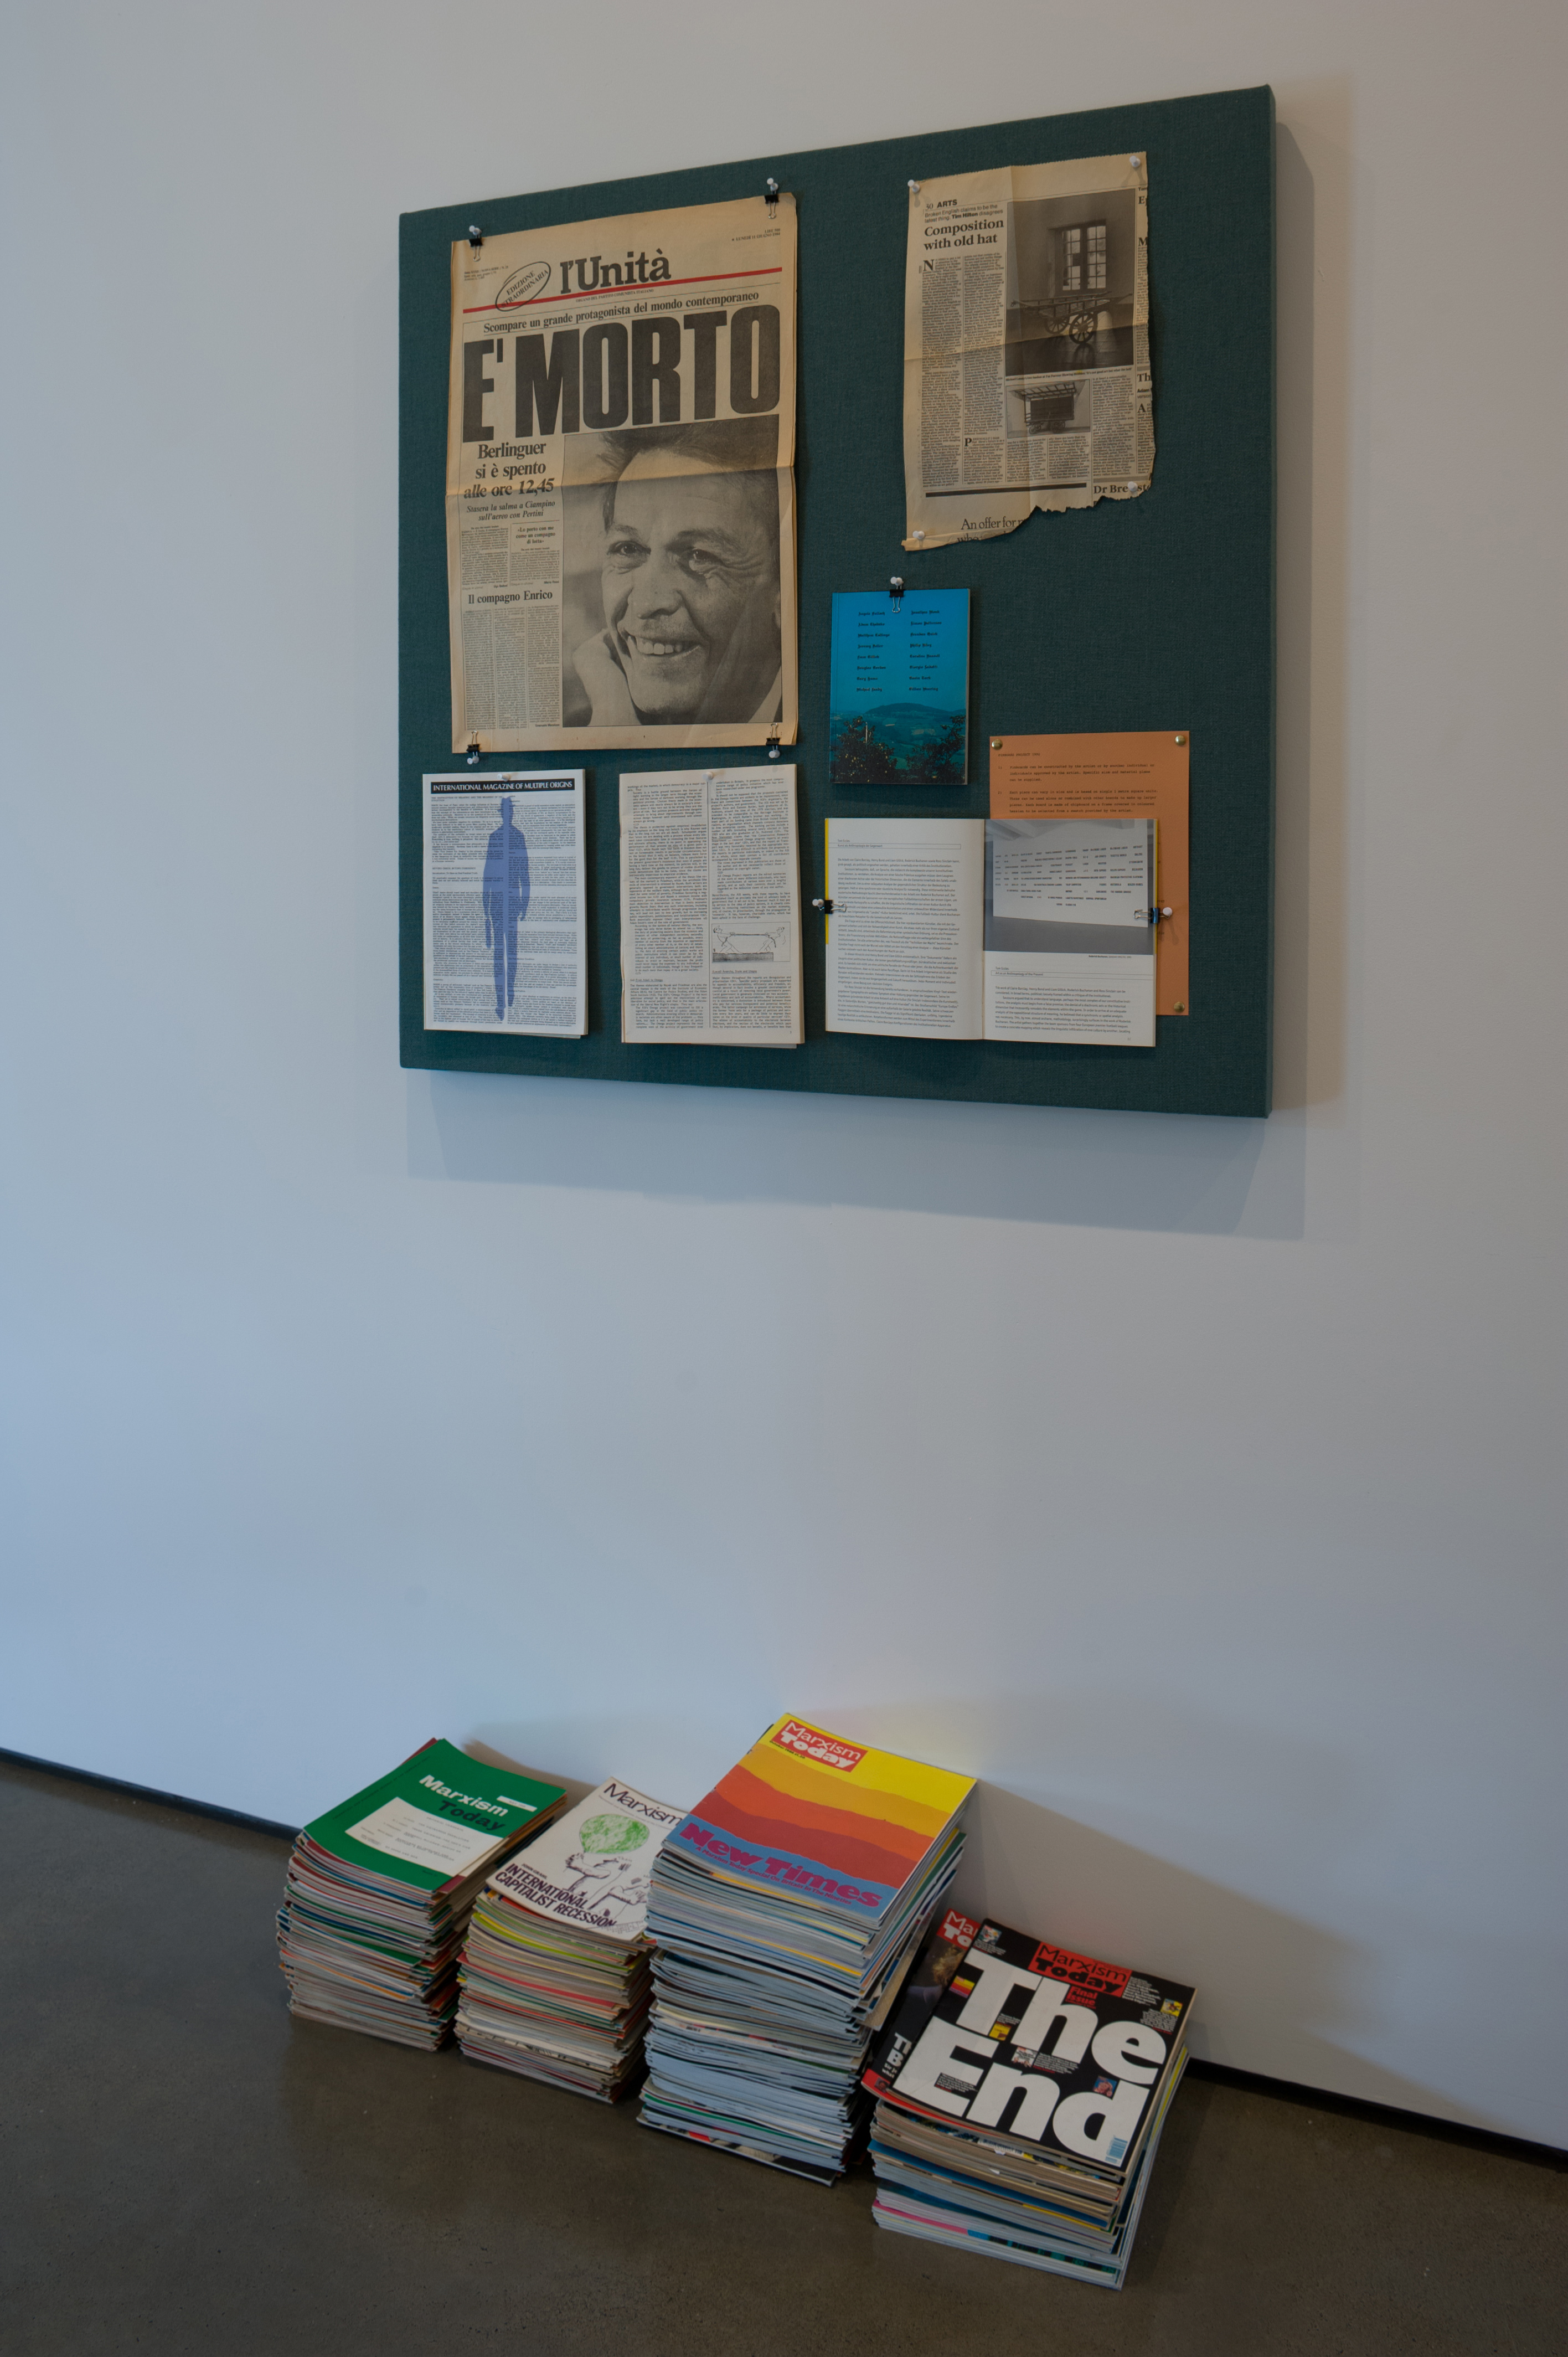 Liam Gillick, The Pinboard Project (Dirty Green), 1992/2012. Realized by Tom Eccles. Installation view of From 199A to 199B : Liam Gillick, Hessel Museum of Art, 2012, Chris Kendall Photographer